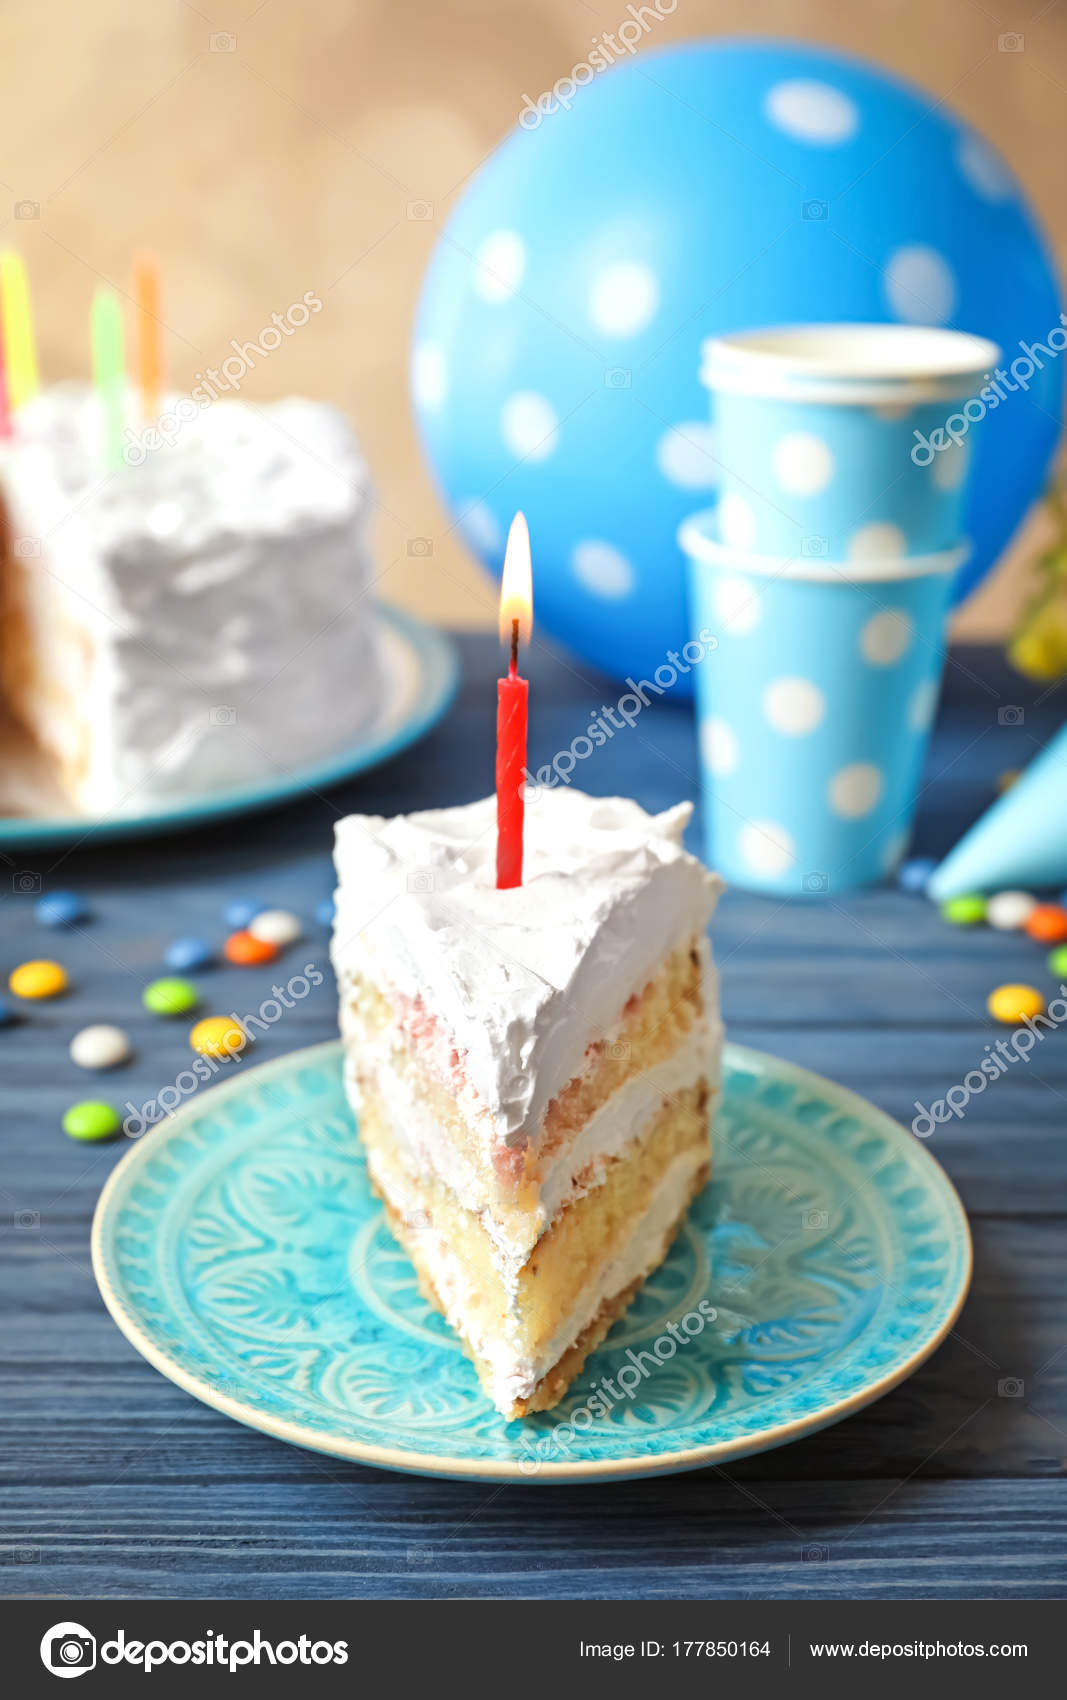 Remarkable Piece Of Birthday Cake With Candle On Table Stock Photo Personalised Birthday Cards Petedlily Jamesorg